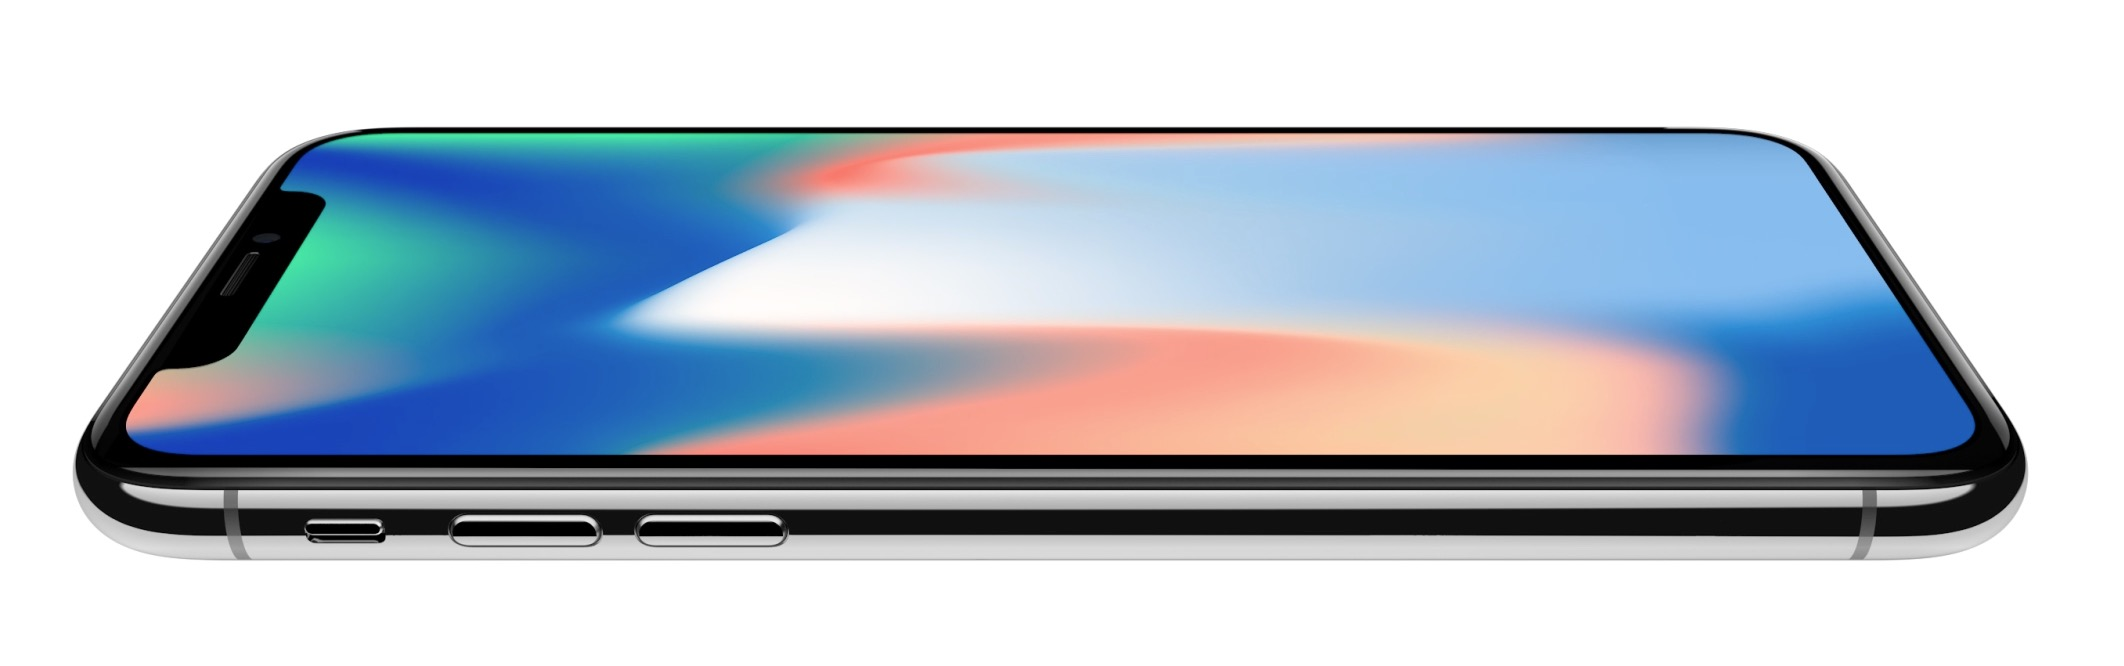 apple iphone 8 and iphone x announced theotek podcast 101